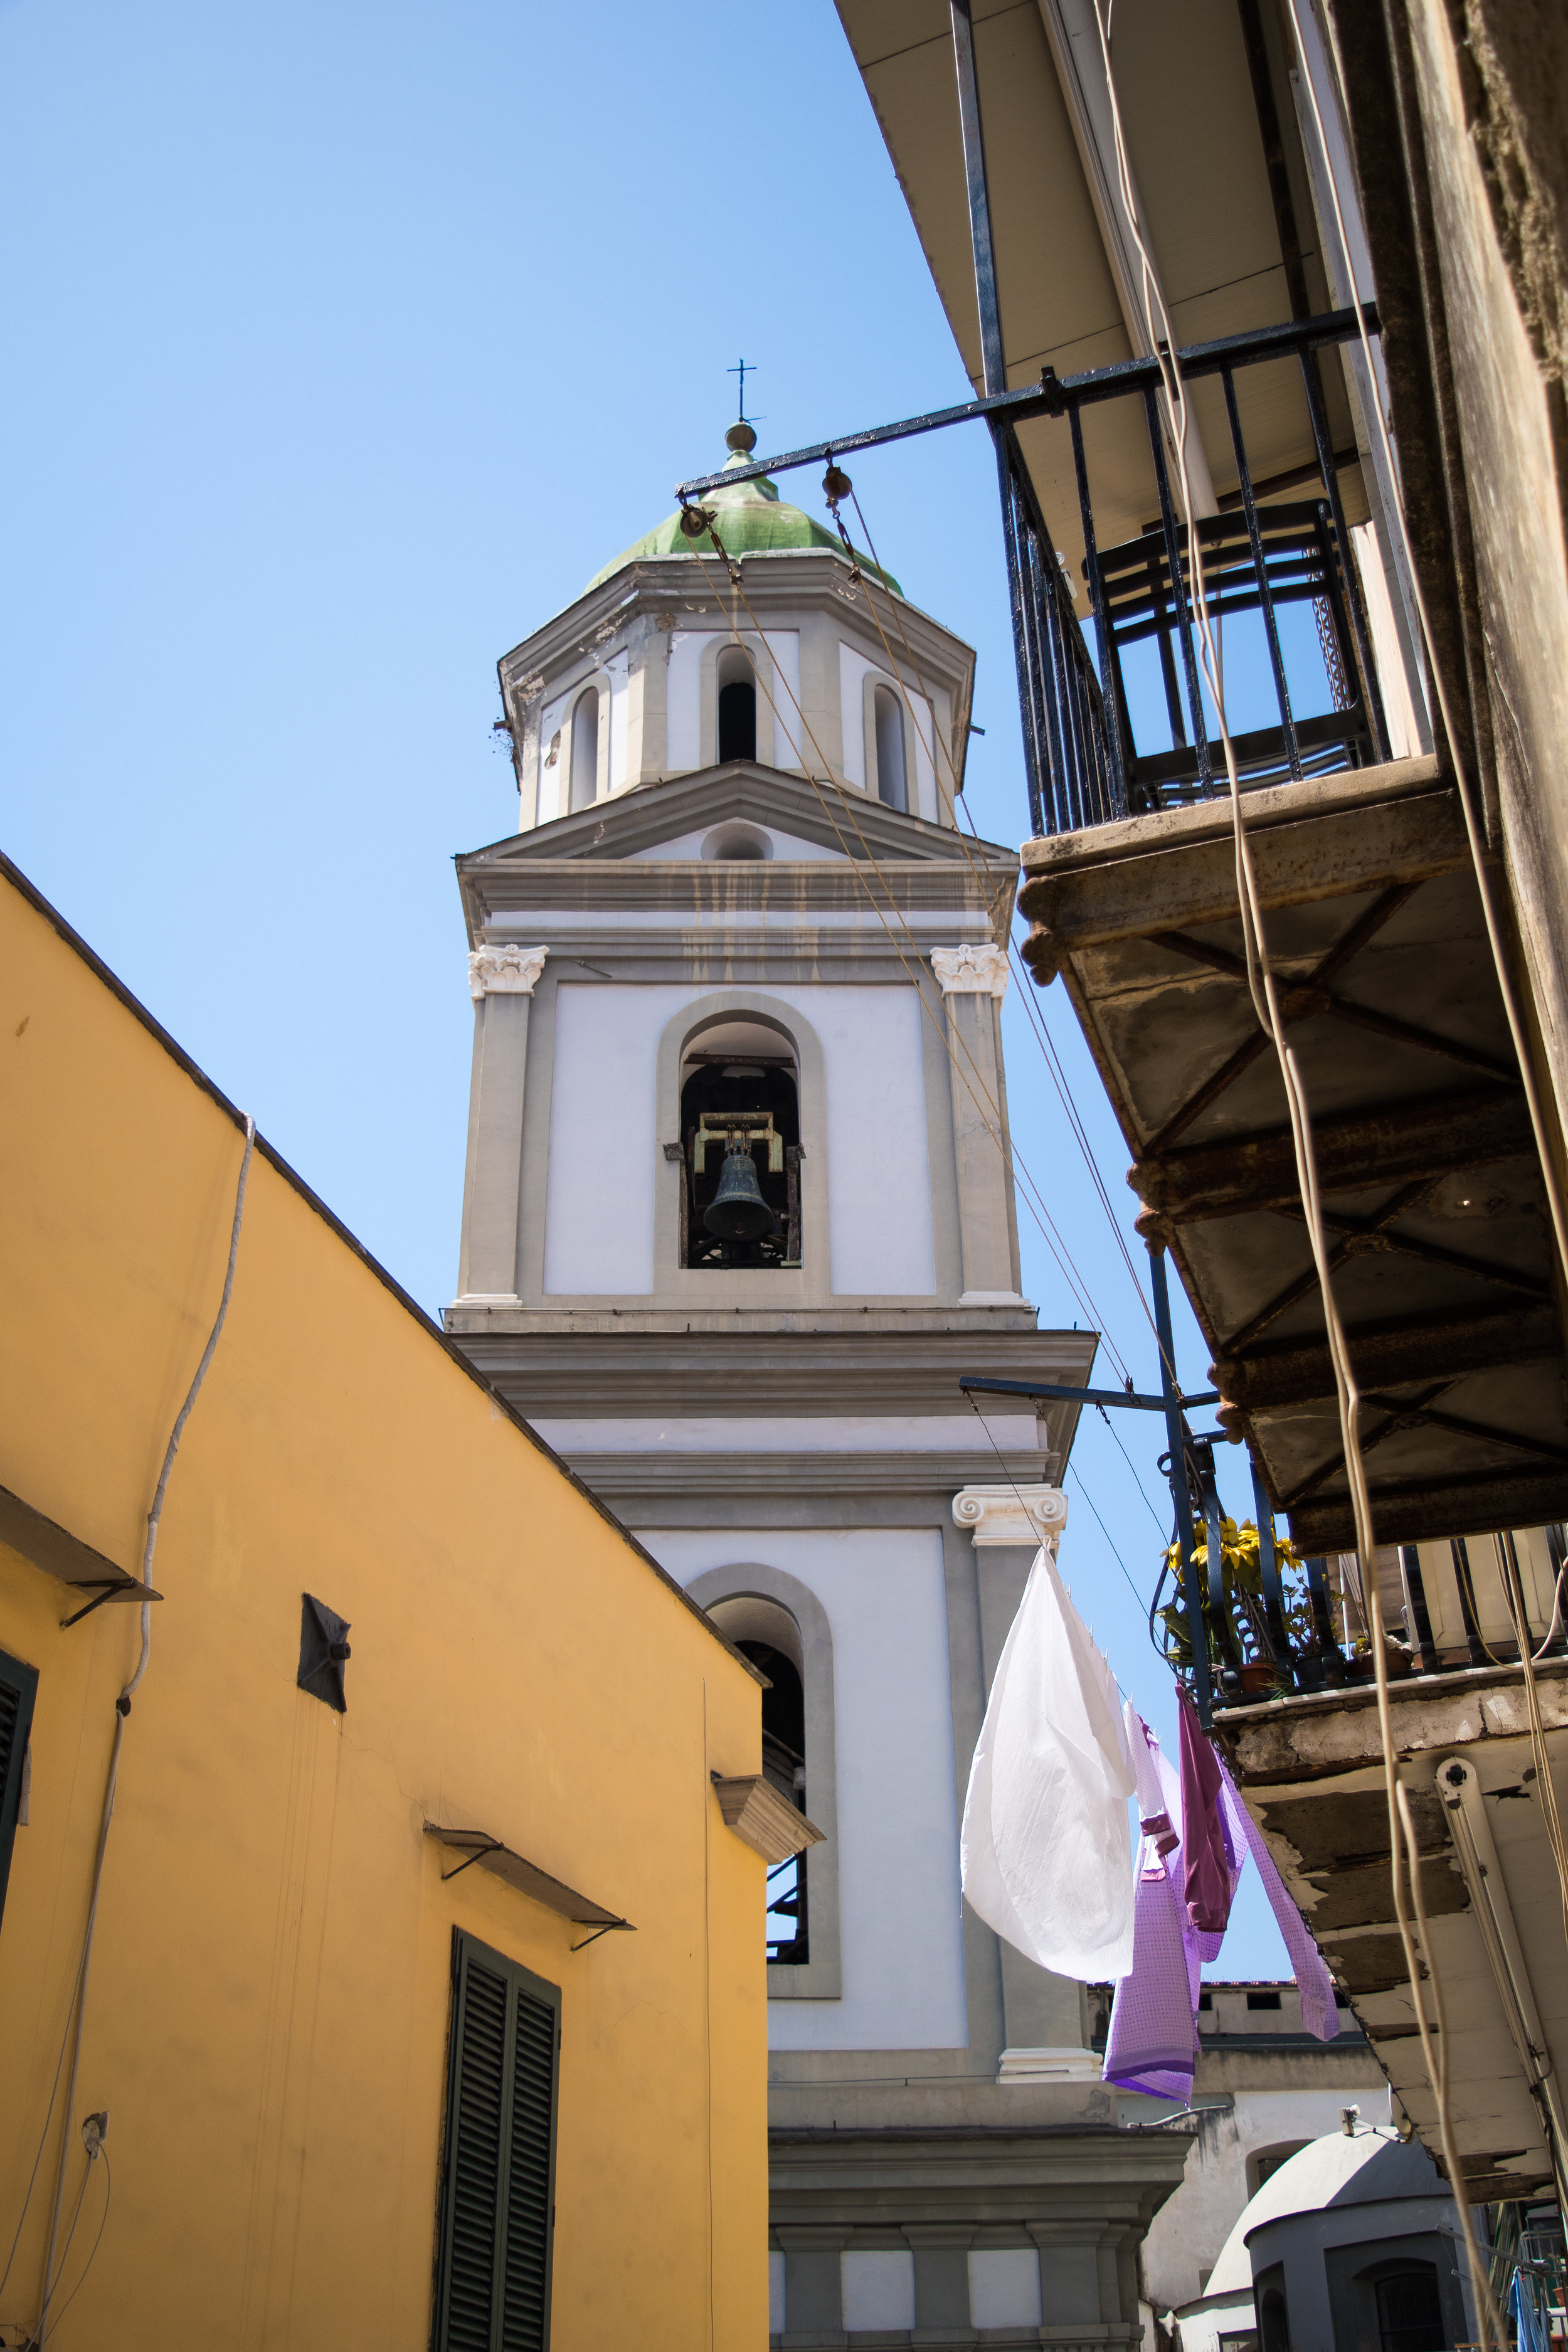 CATACOMBS OF SAN GAUDIOSO BELL TOWER